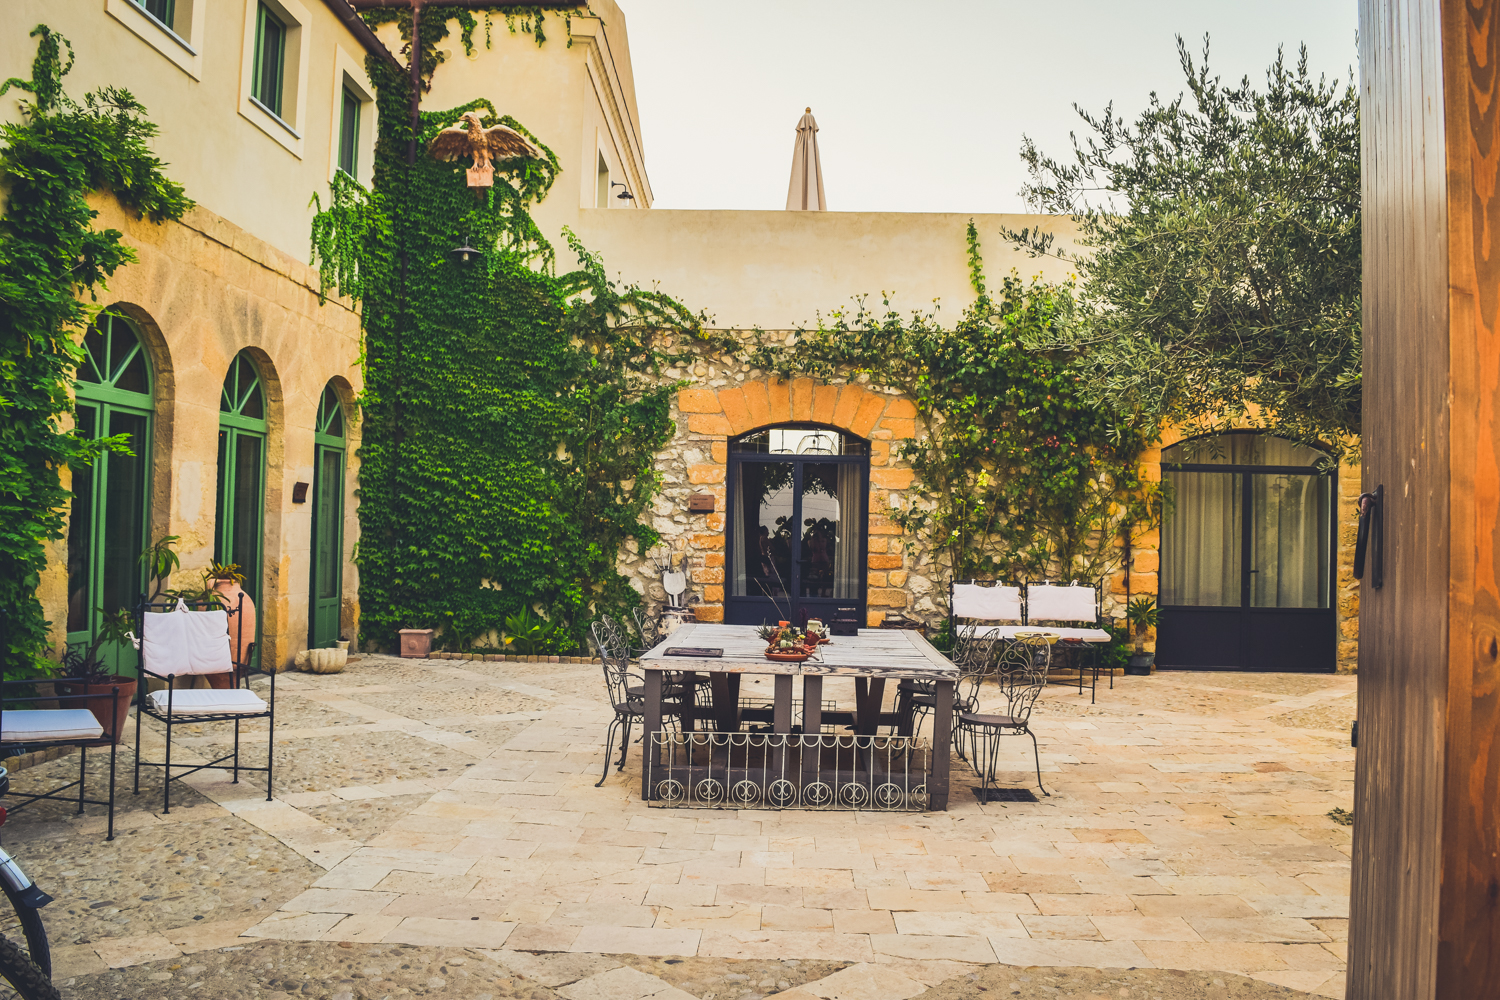 Travel guide to sicily fontes episcopi bio resort where to stay in sicily sicilia near agrigento italy-52 courtyard